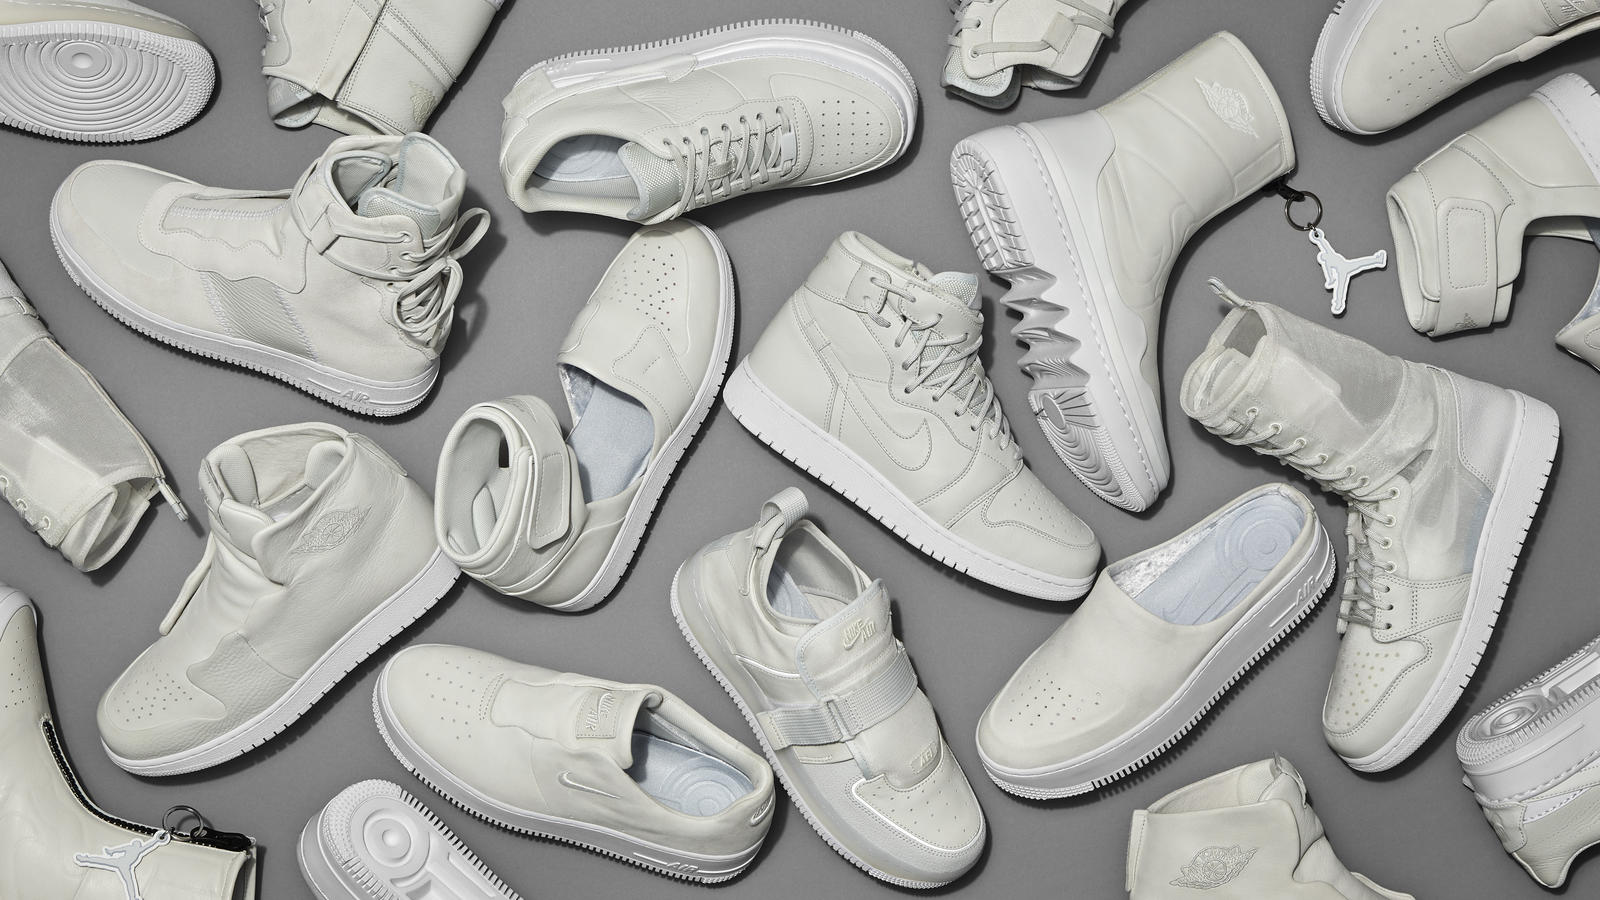 c7cf3a8947f06 The Making of The 1 Reimagined - Nike News